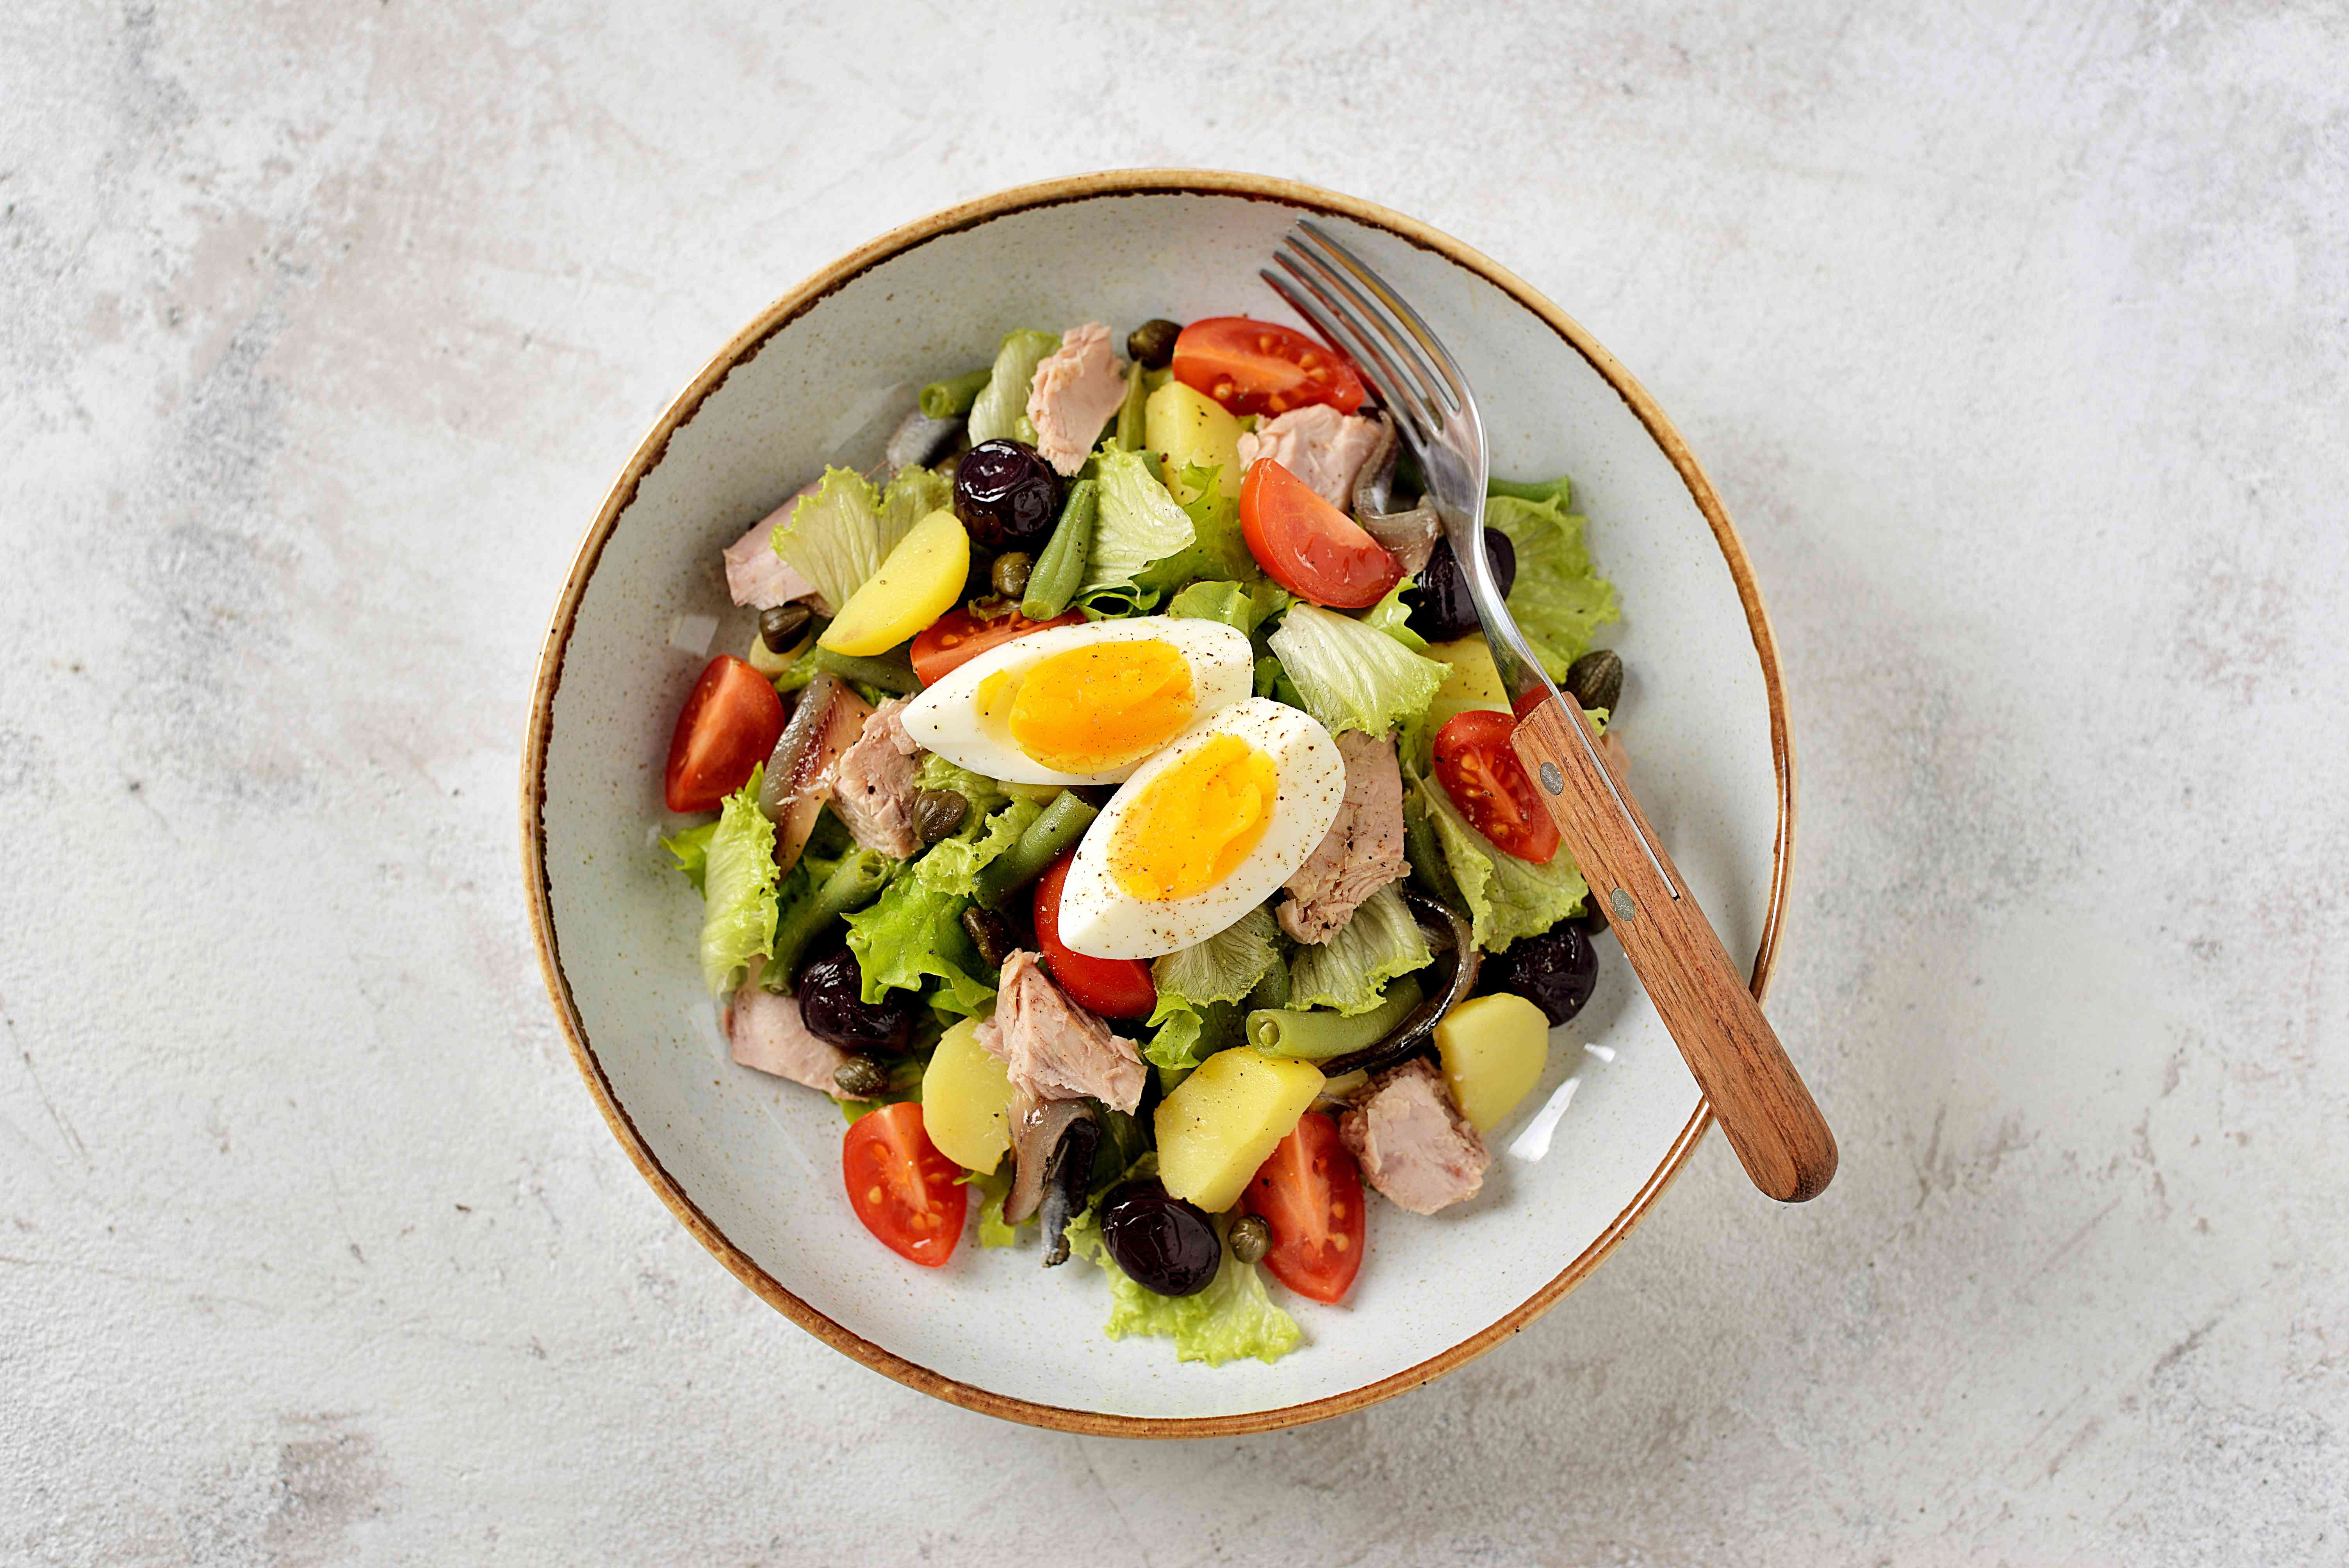 French salad Nicoise with tuna, boiled potatoes, egg, green beans, tomatoes, dried olives, lettuce and anchovies. Top View.